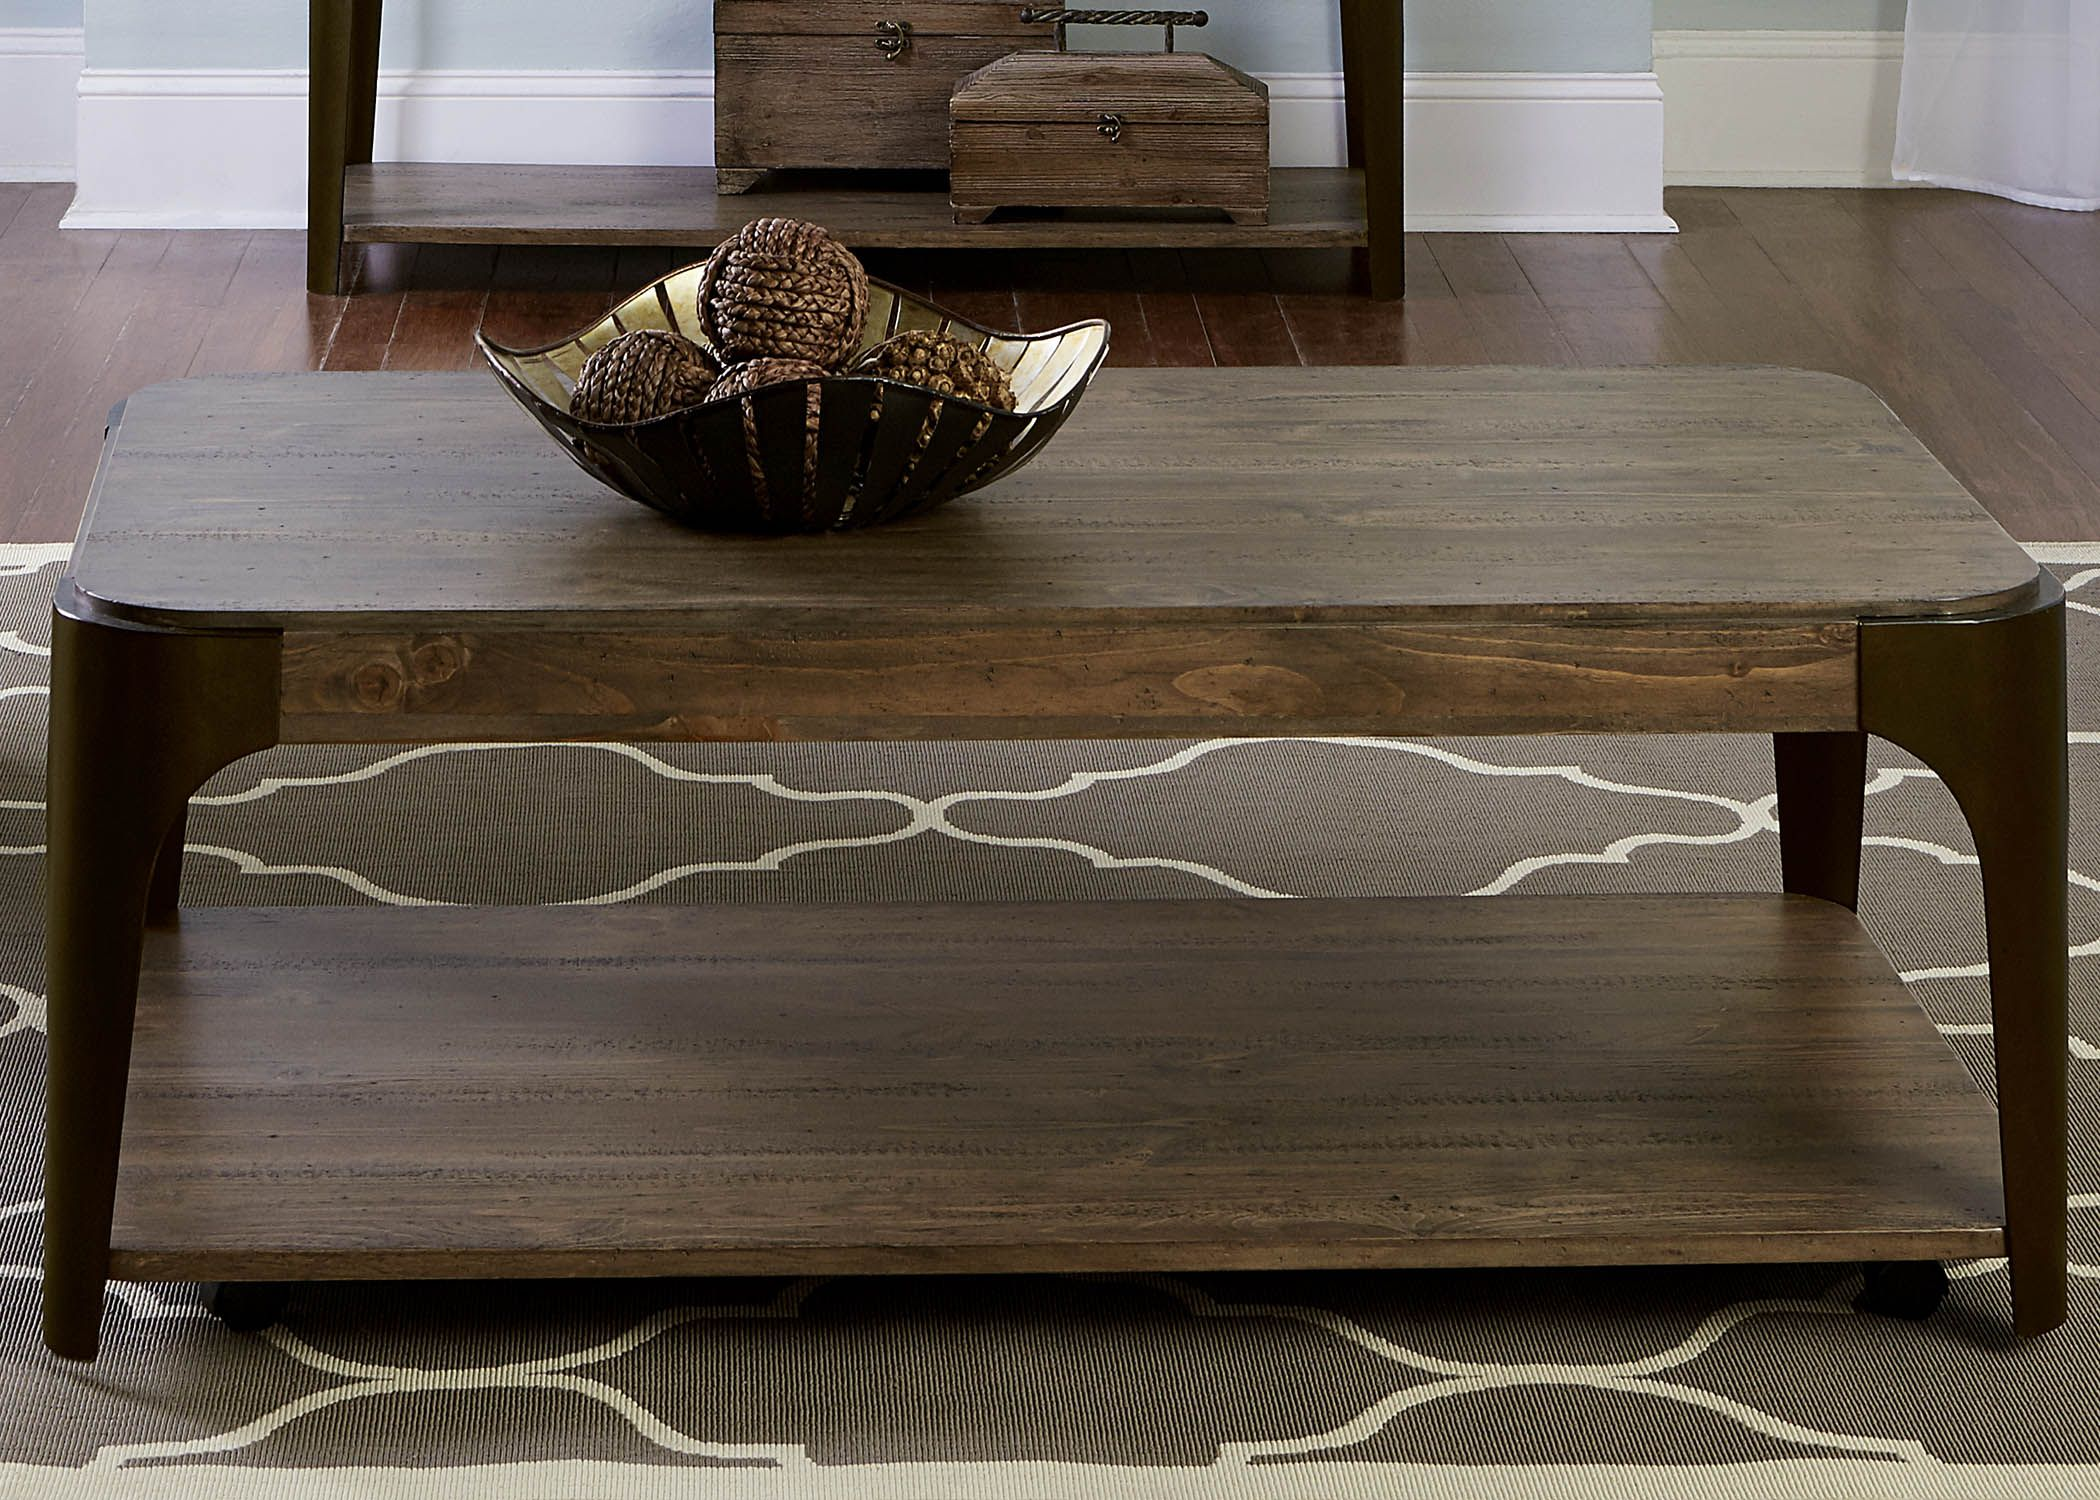 Pin By Cennos On Nhil Overstock Living Room Coffee Table Coffee Table Liberty Furniture